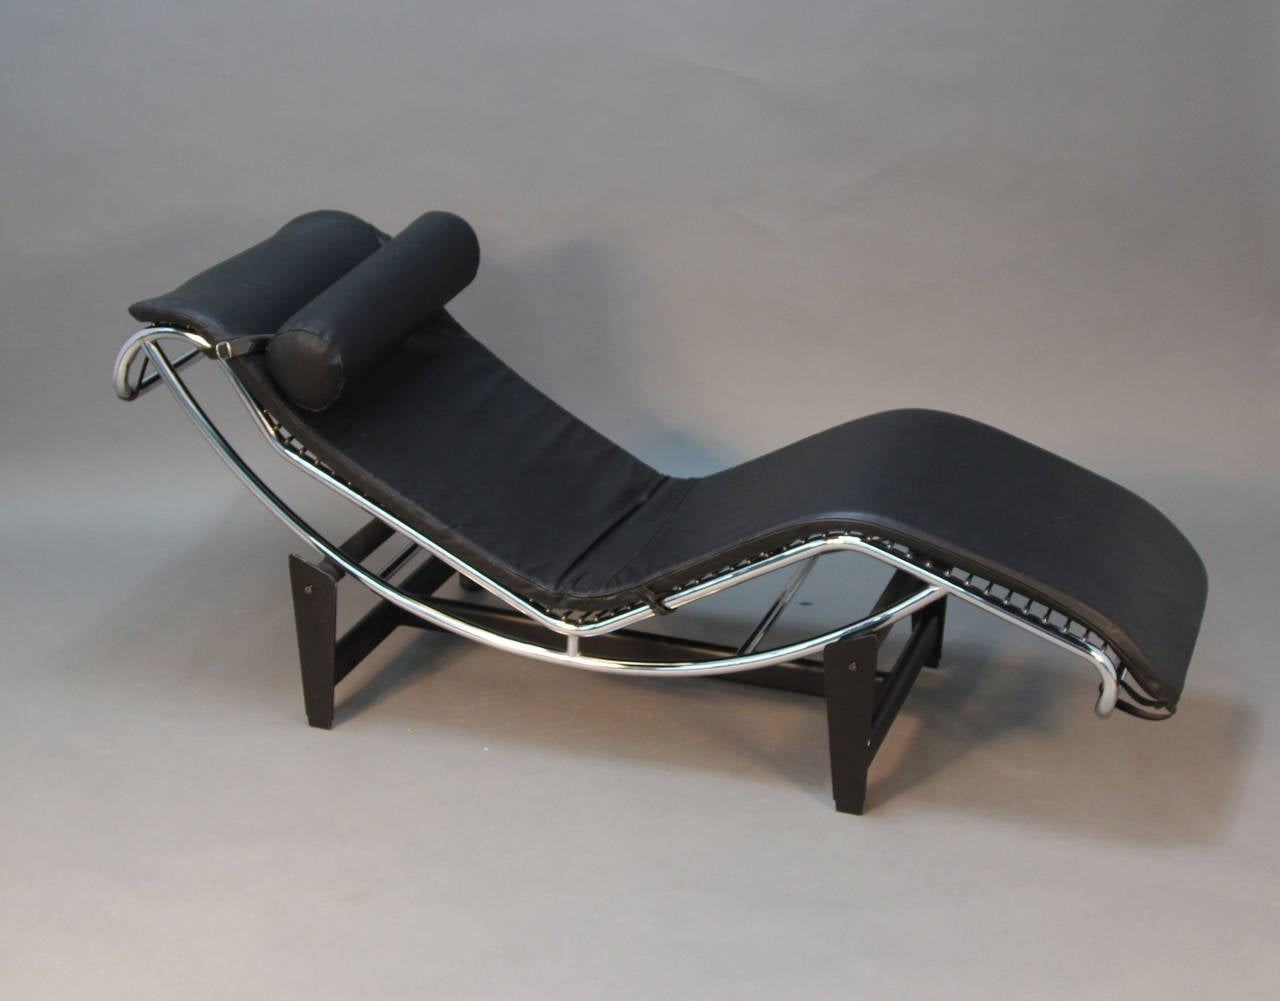 Le corbusier lounge chair - Le Corbusier Lc4 Chrome And Leather Lounge Chair 2